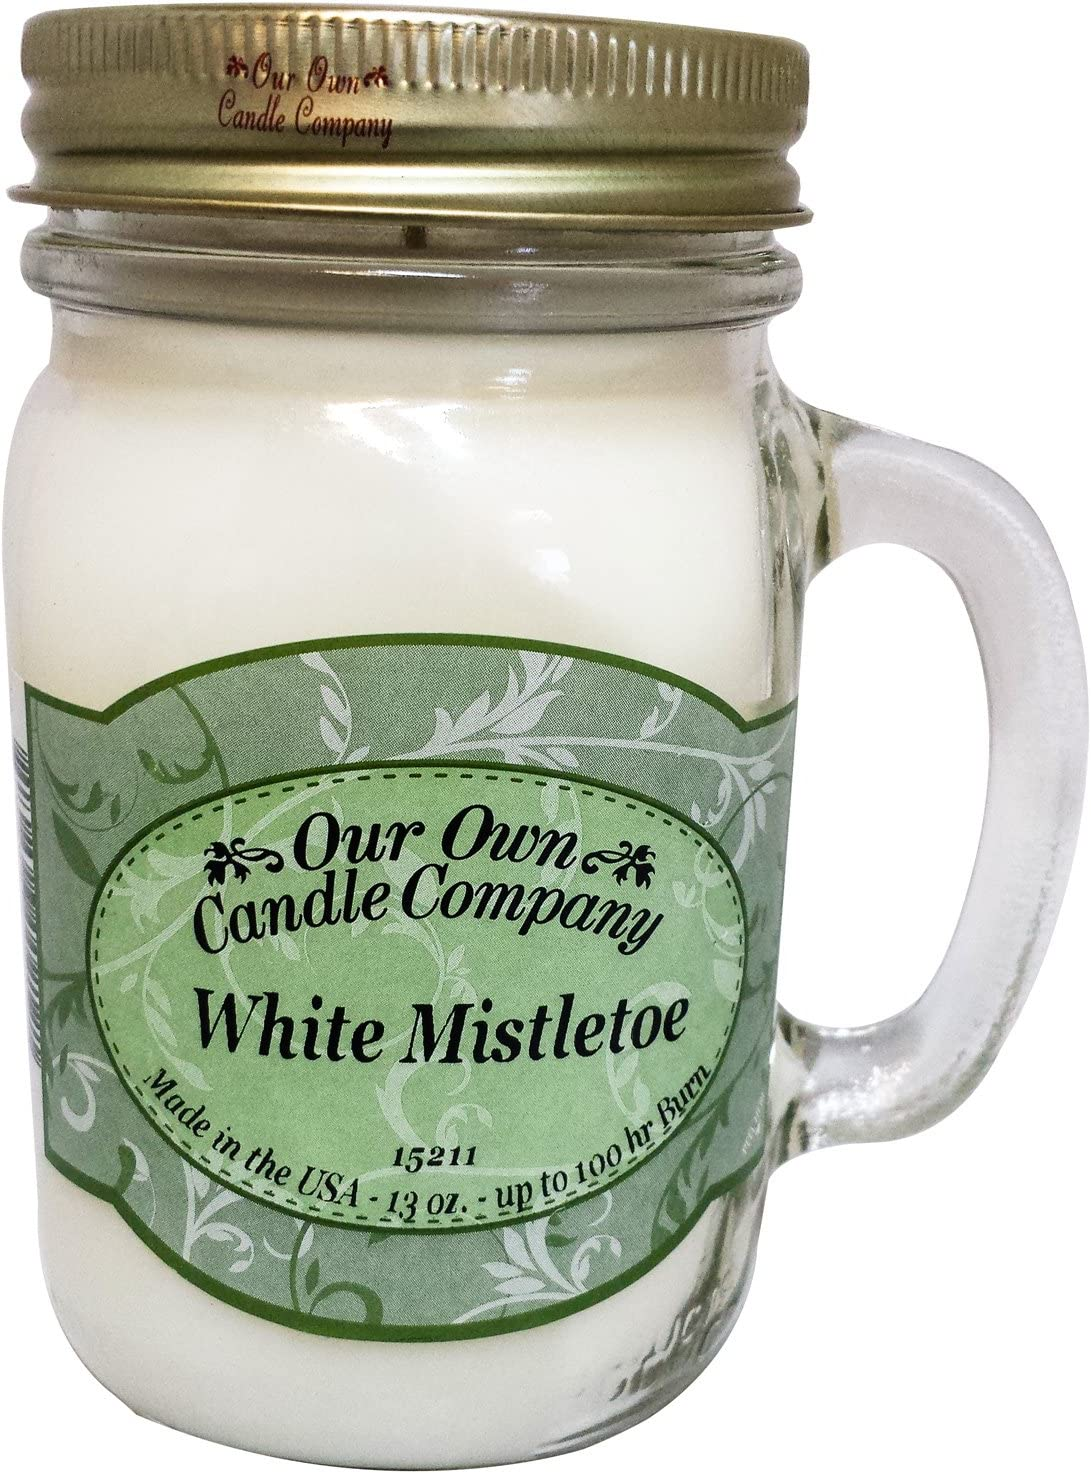 Our Own Candle Company White Mistletoe Scented 13 Ounce Mason Jar Candle